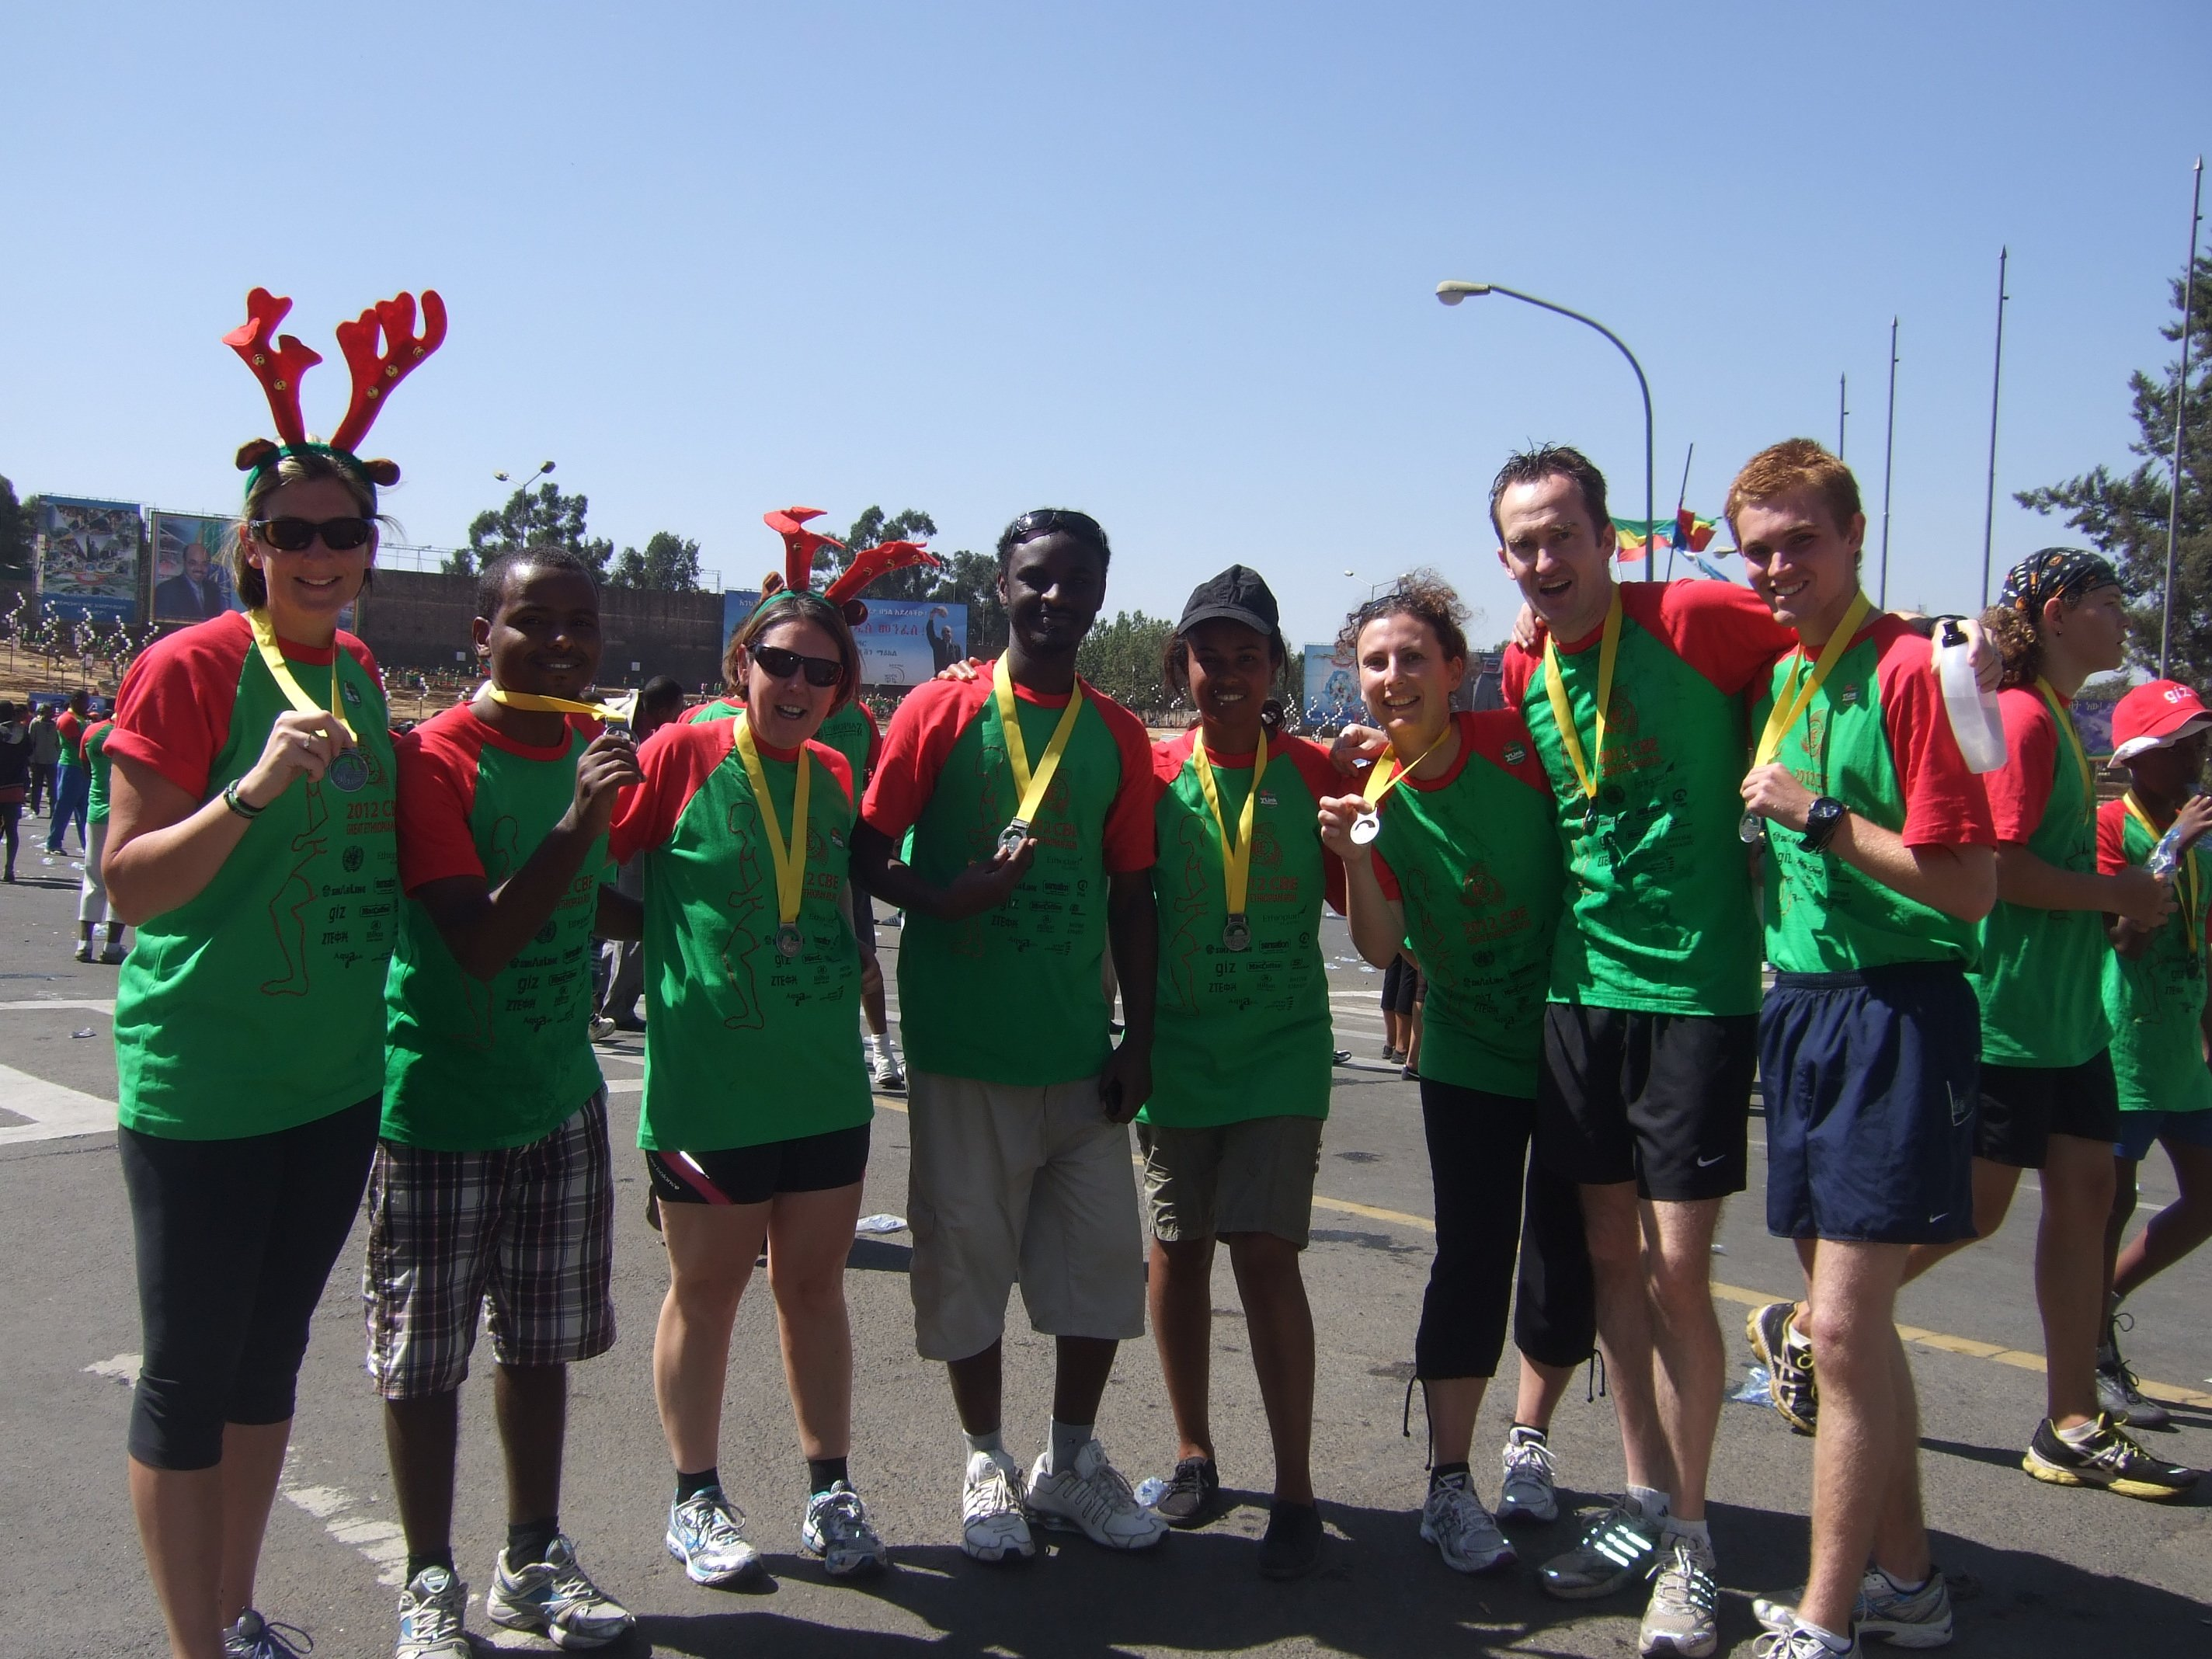 Join us for the Great Ethiopian Run 2013!